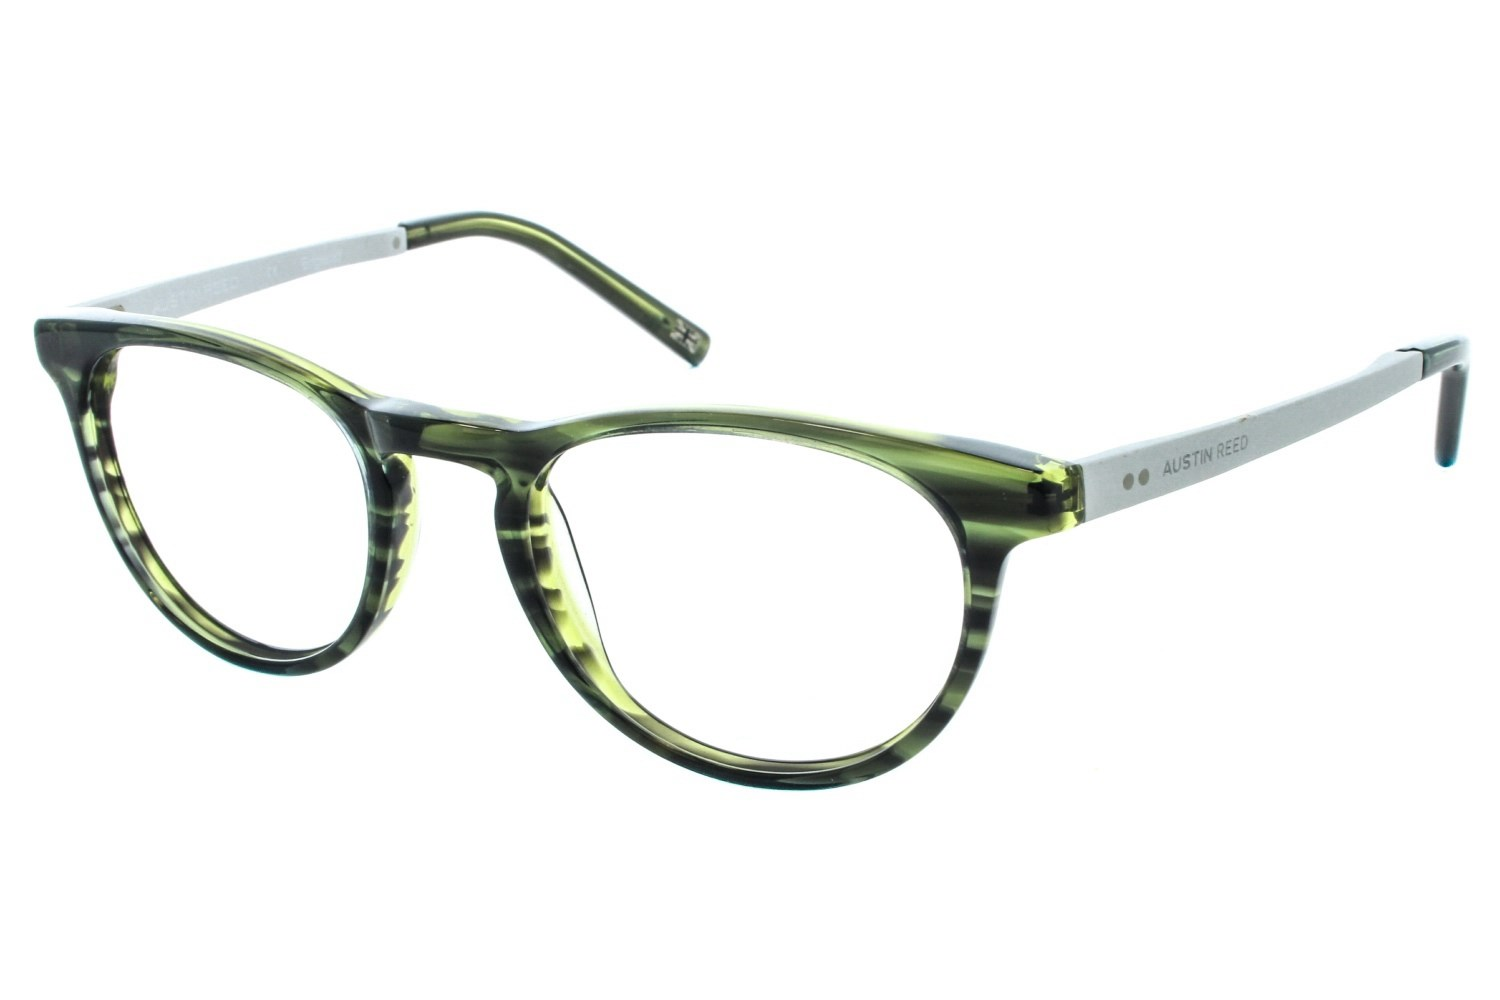 Austin Reed Ar T10 Prescription Eyeglasses Raybantakessunglasses